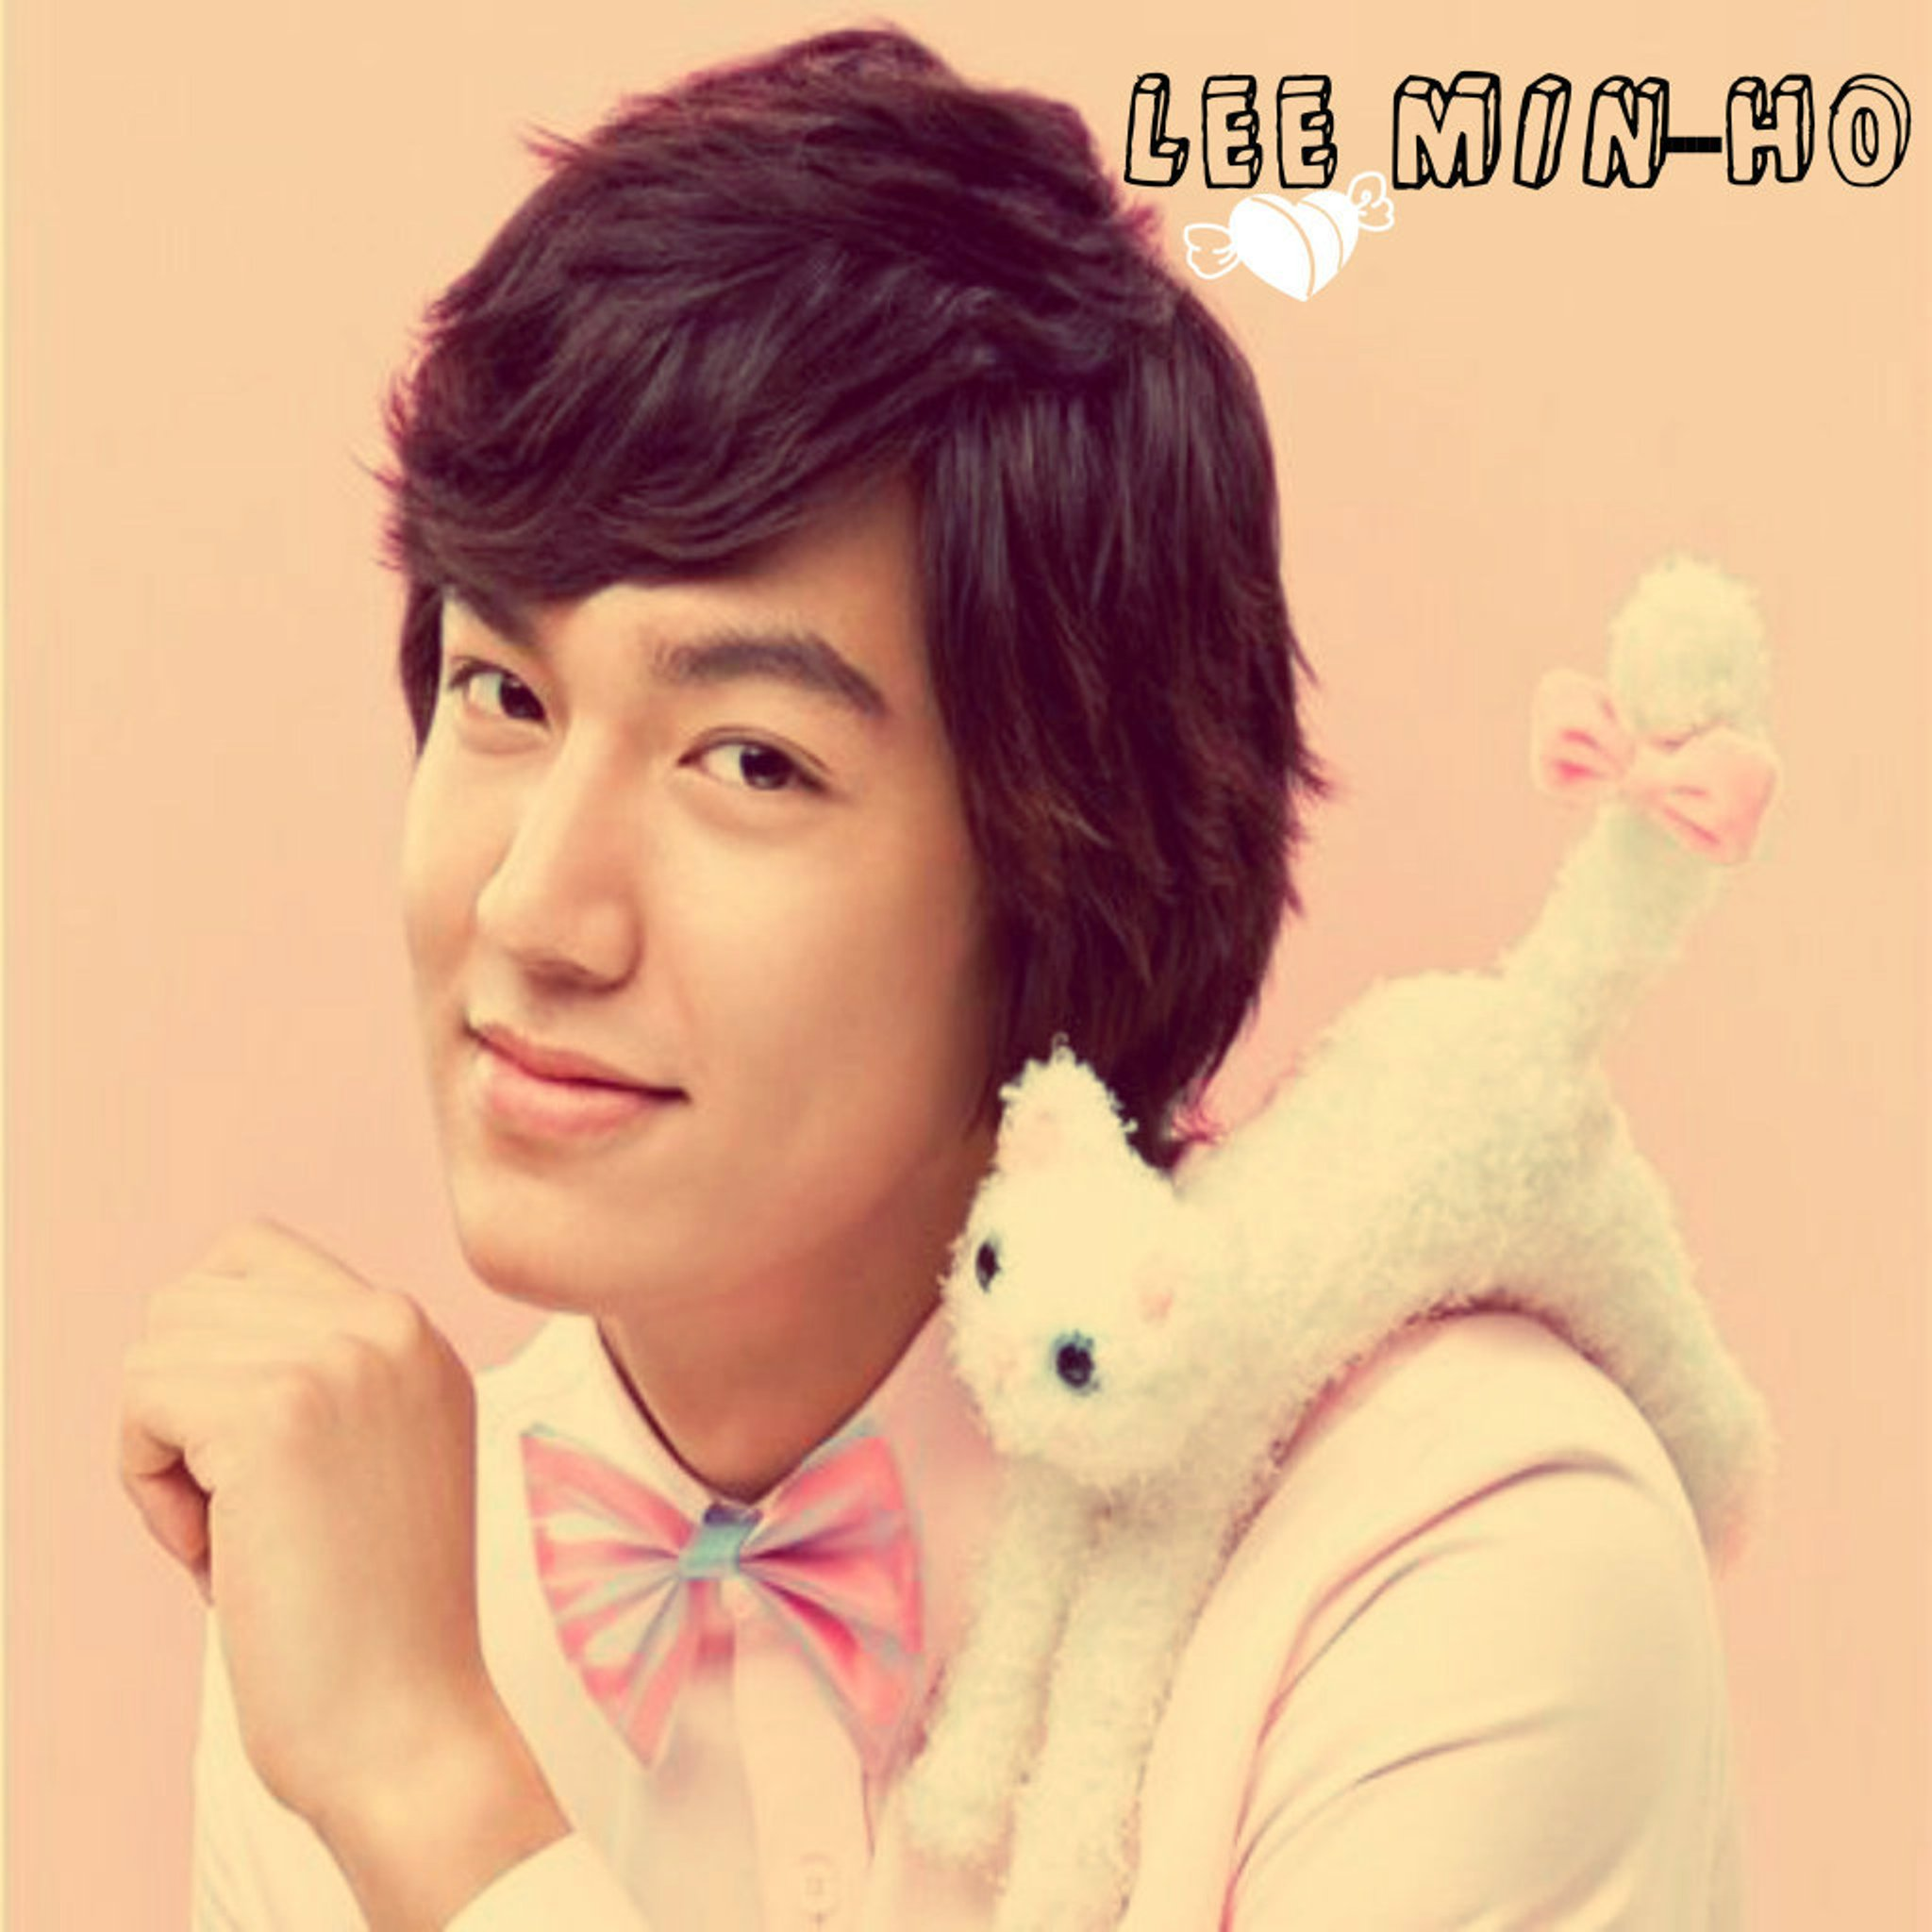 Lee-Min-Ho-Plastic-Surgery-294